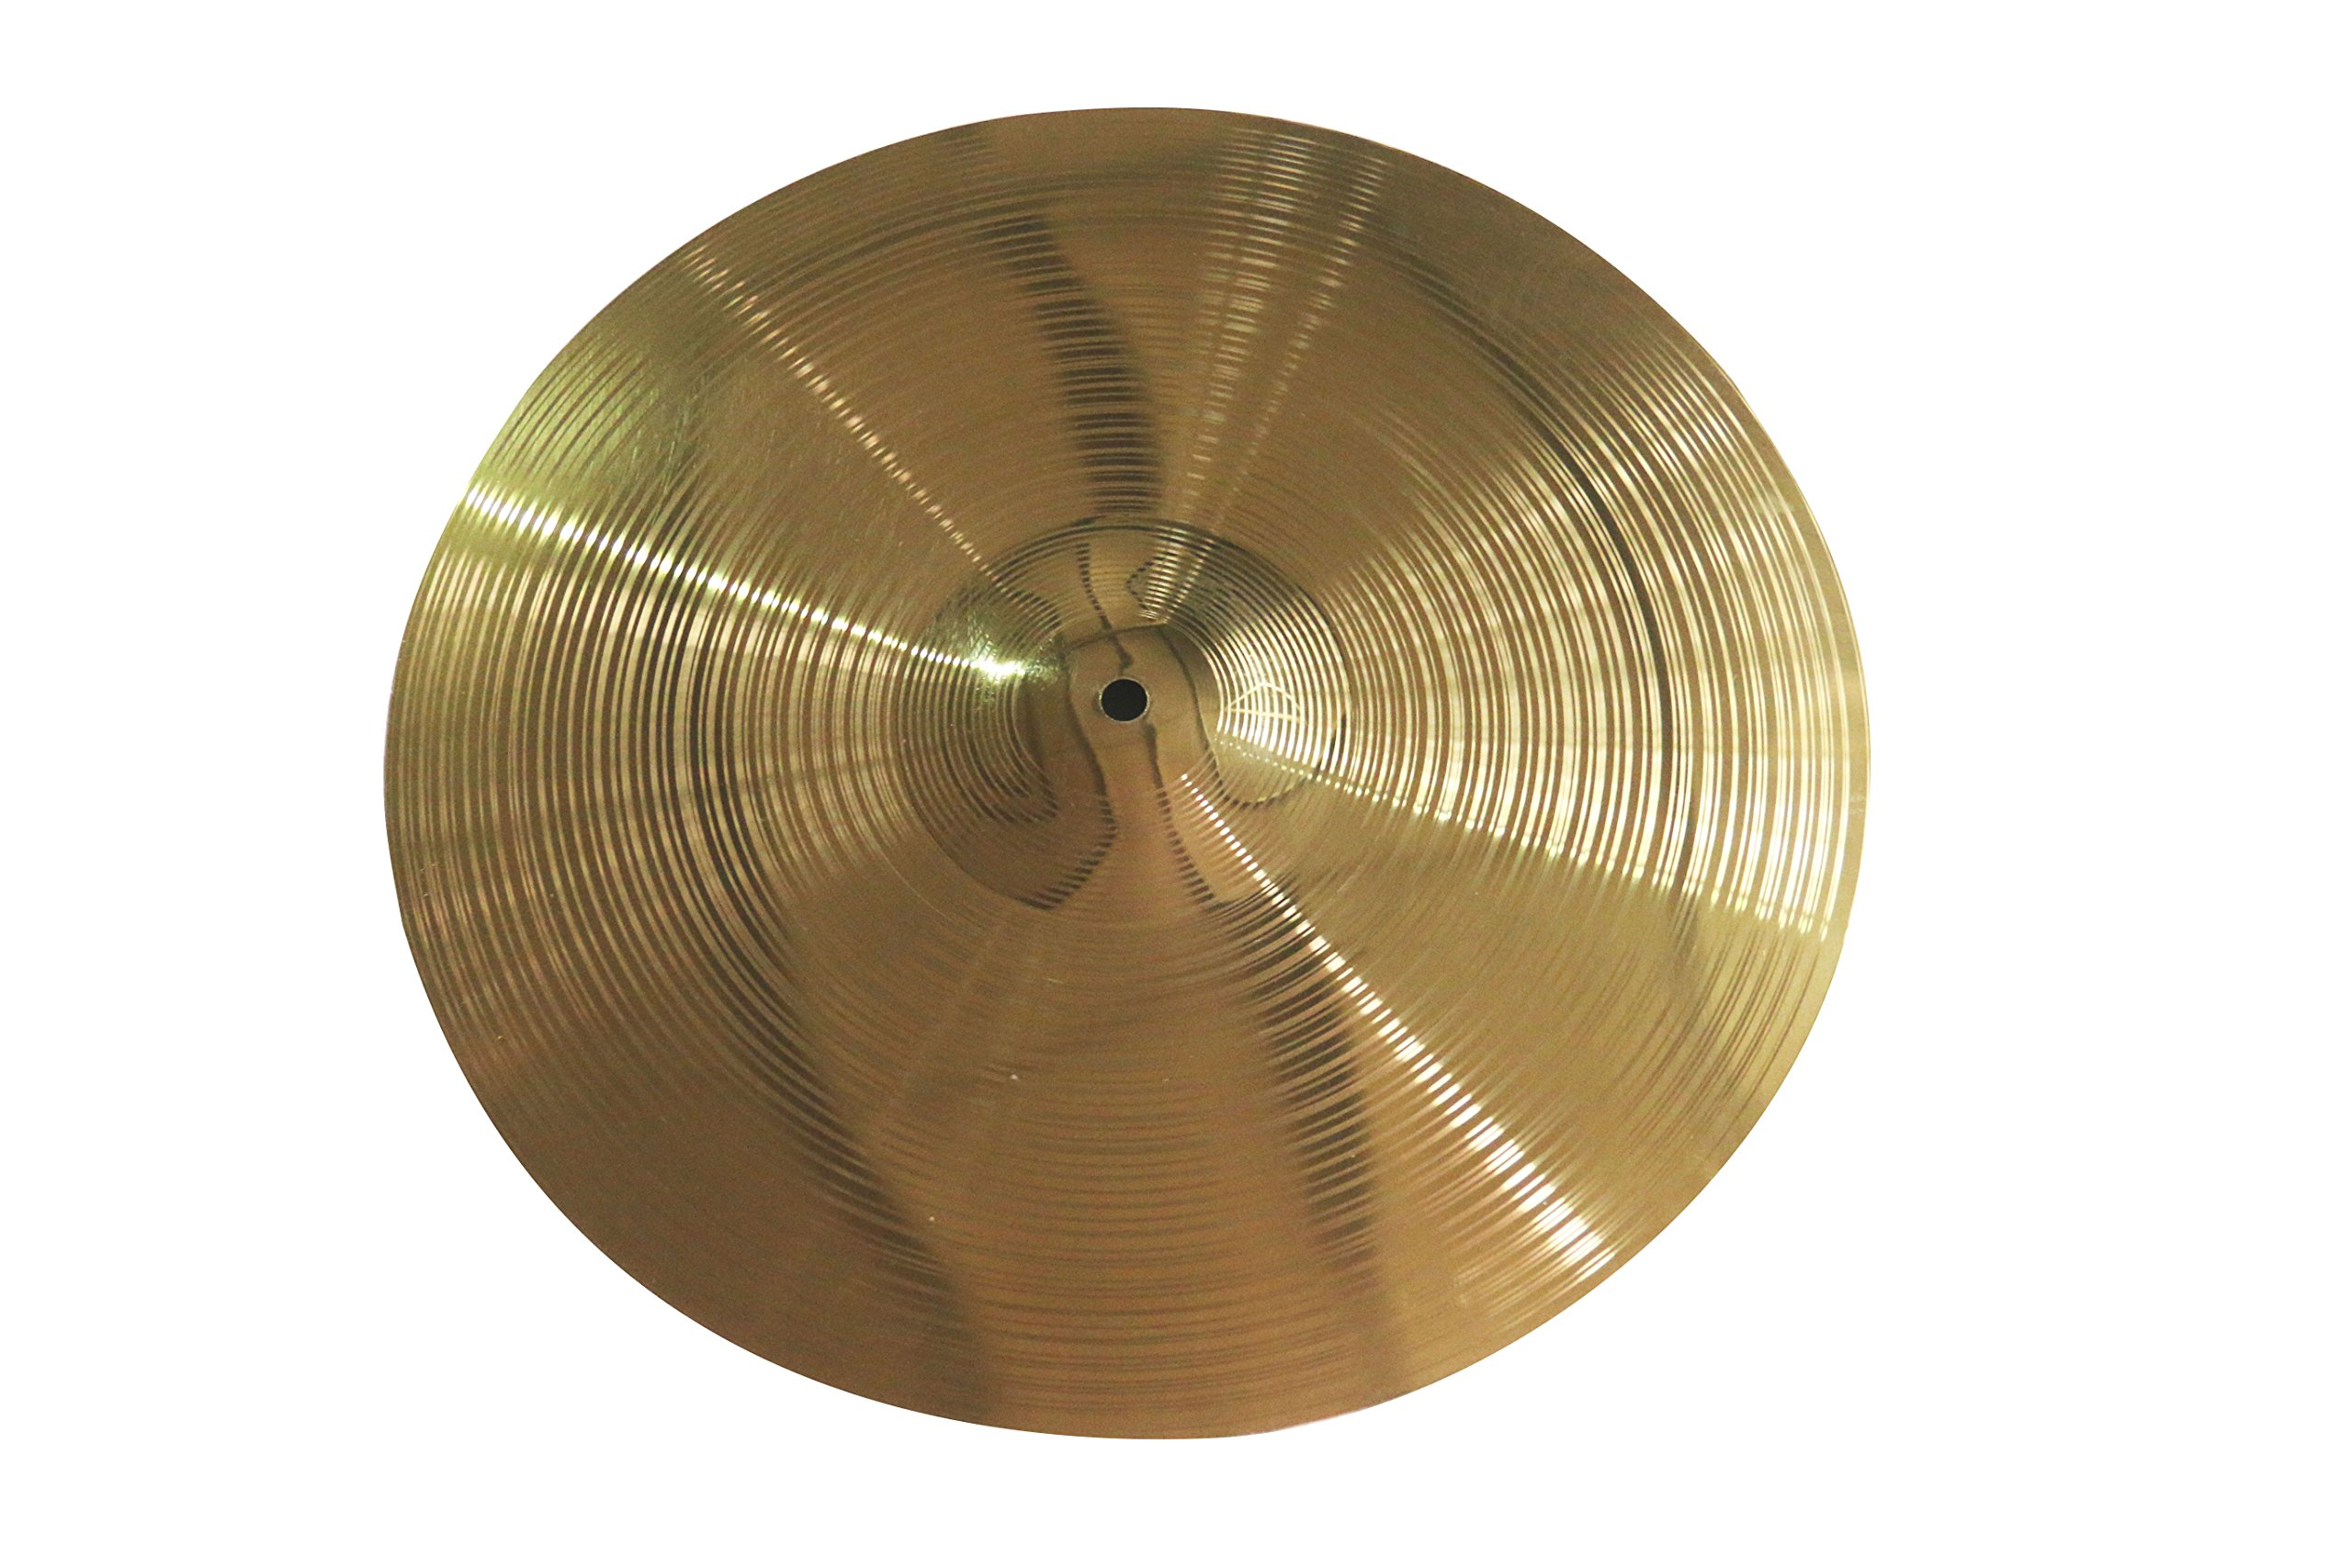 Aliyes Advance Alloy 20 inch ride Cymbals For Drumset(ALJSW20)